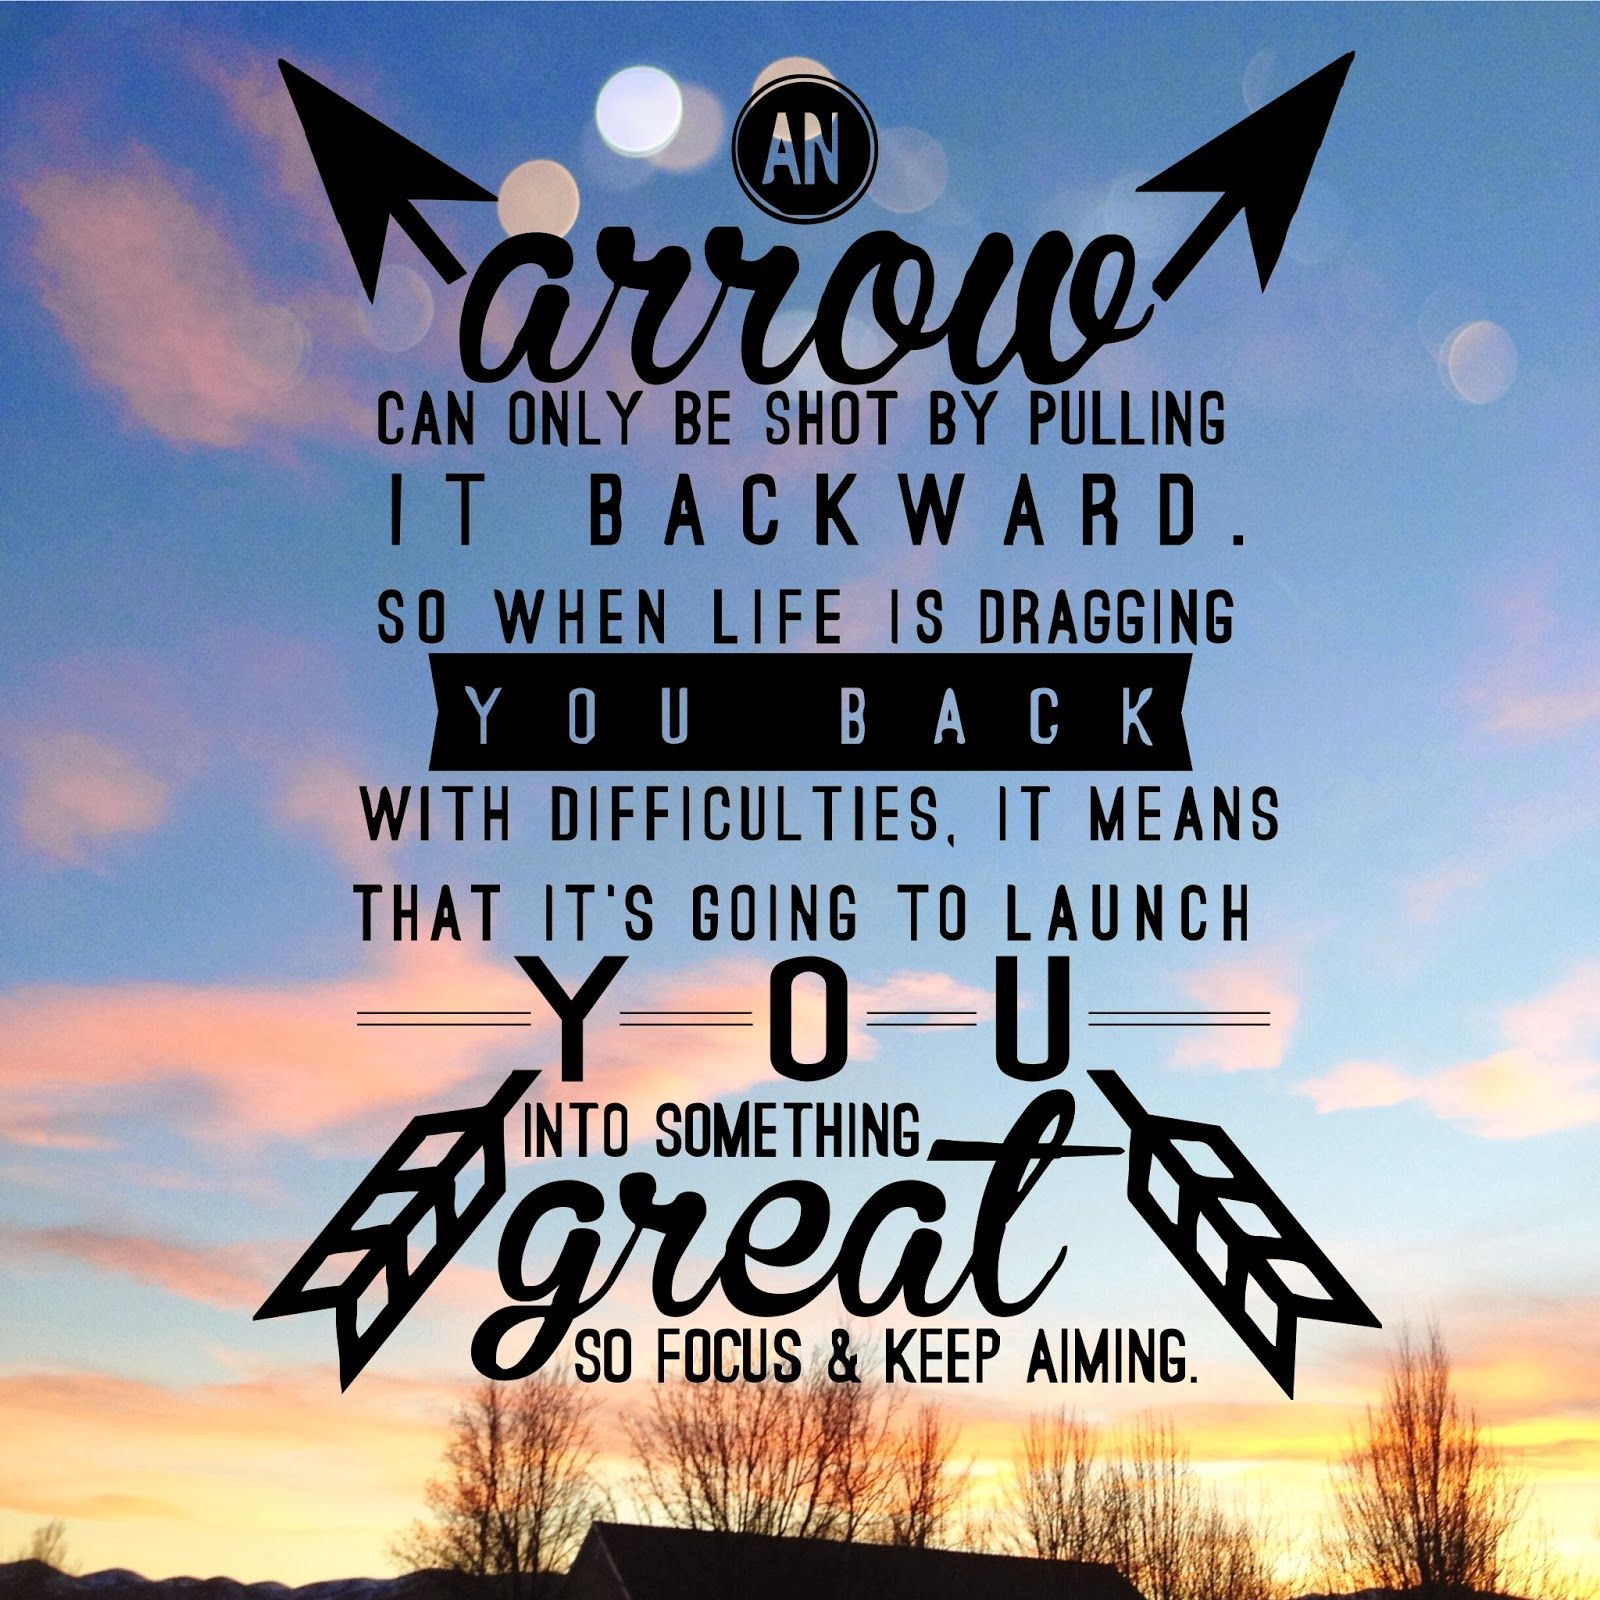 An Arrow With Images Life Quotes Motivational Quotes Arrow Quote